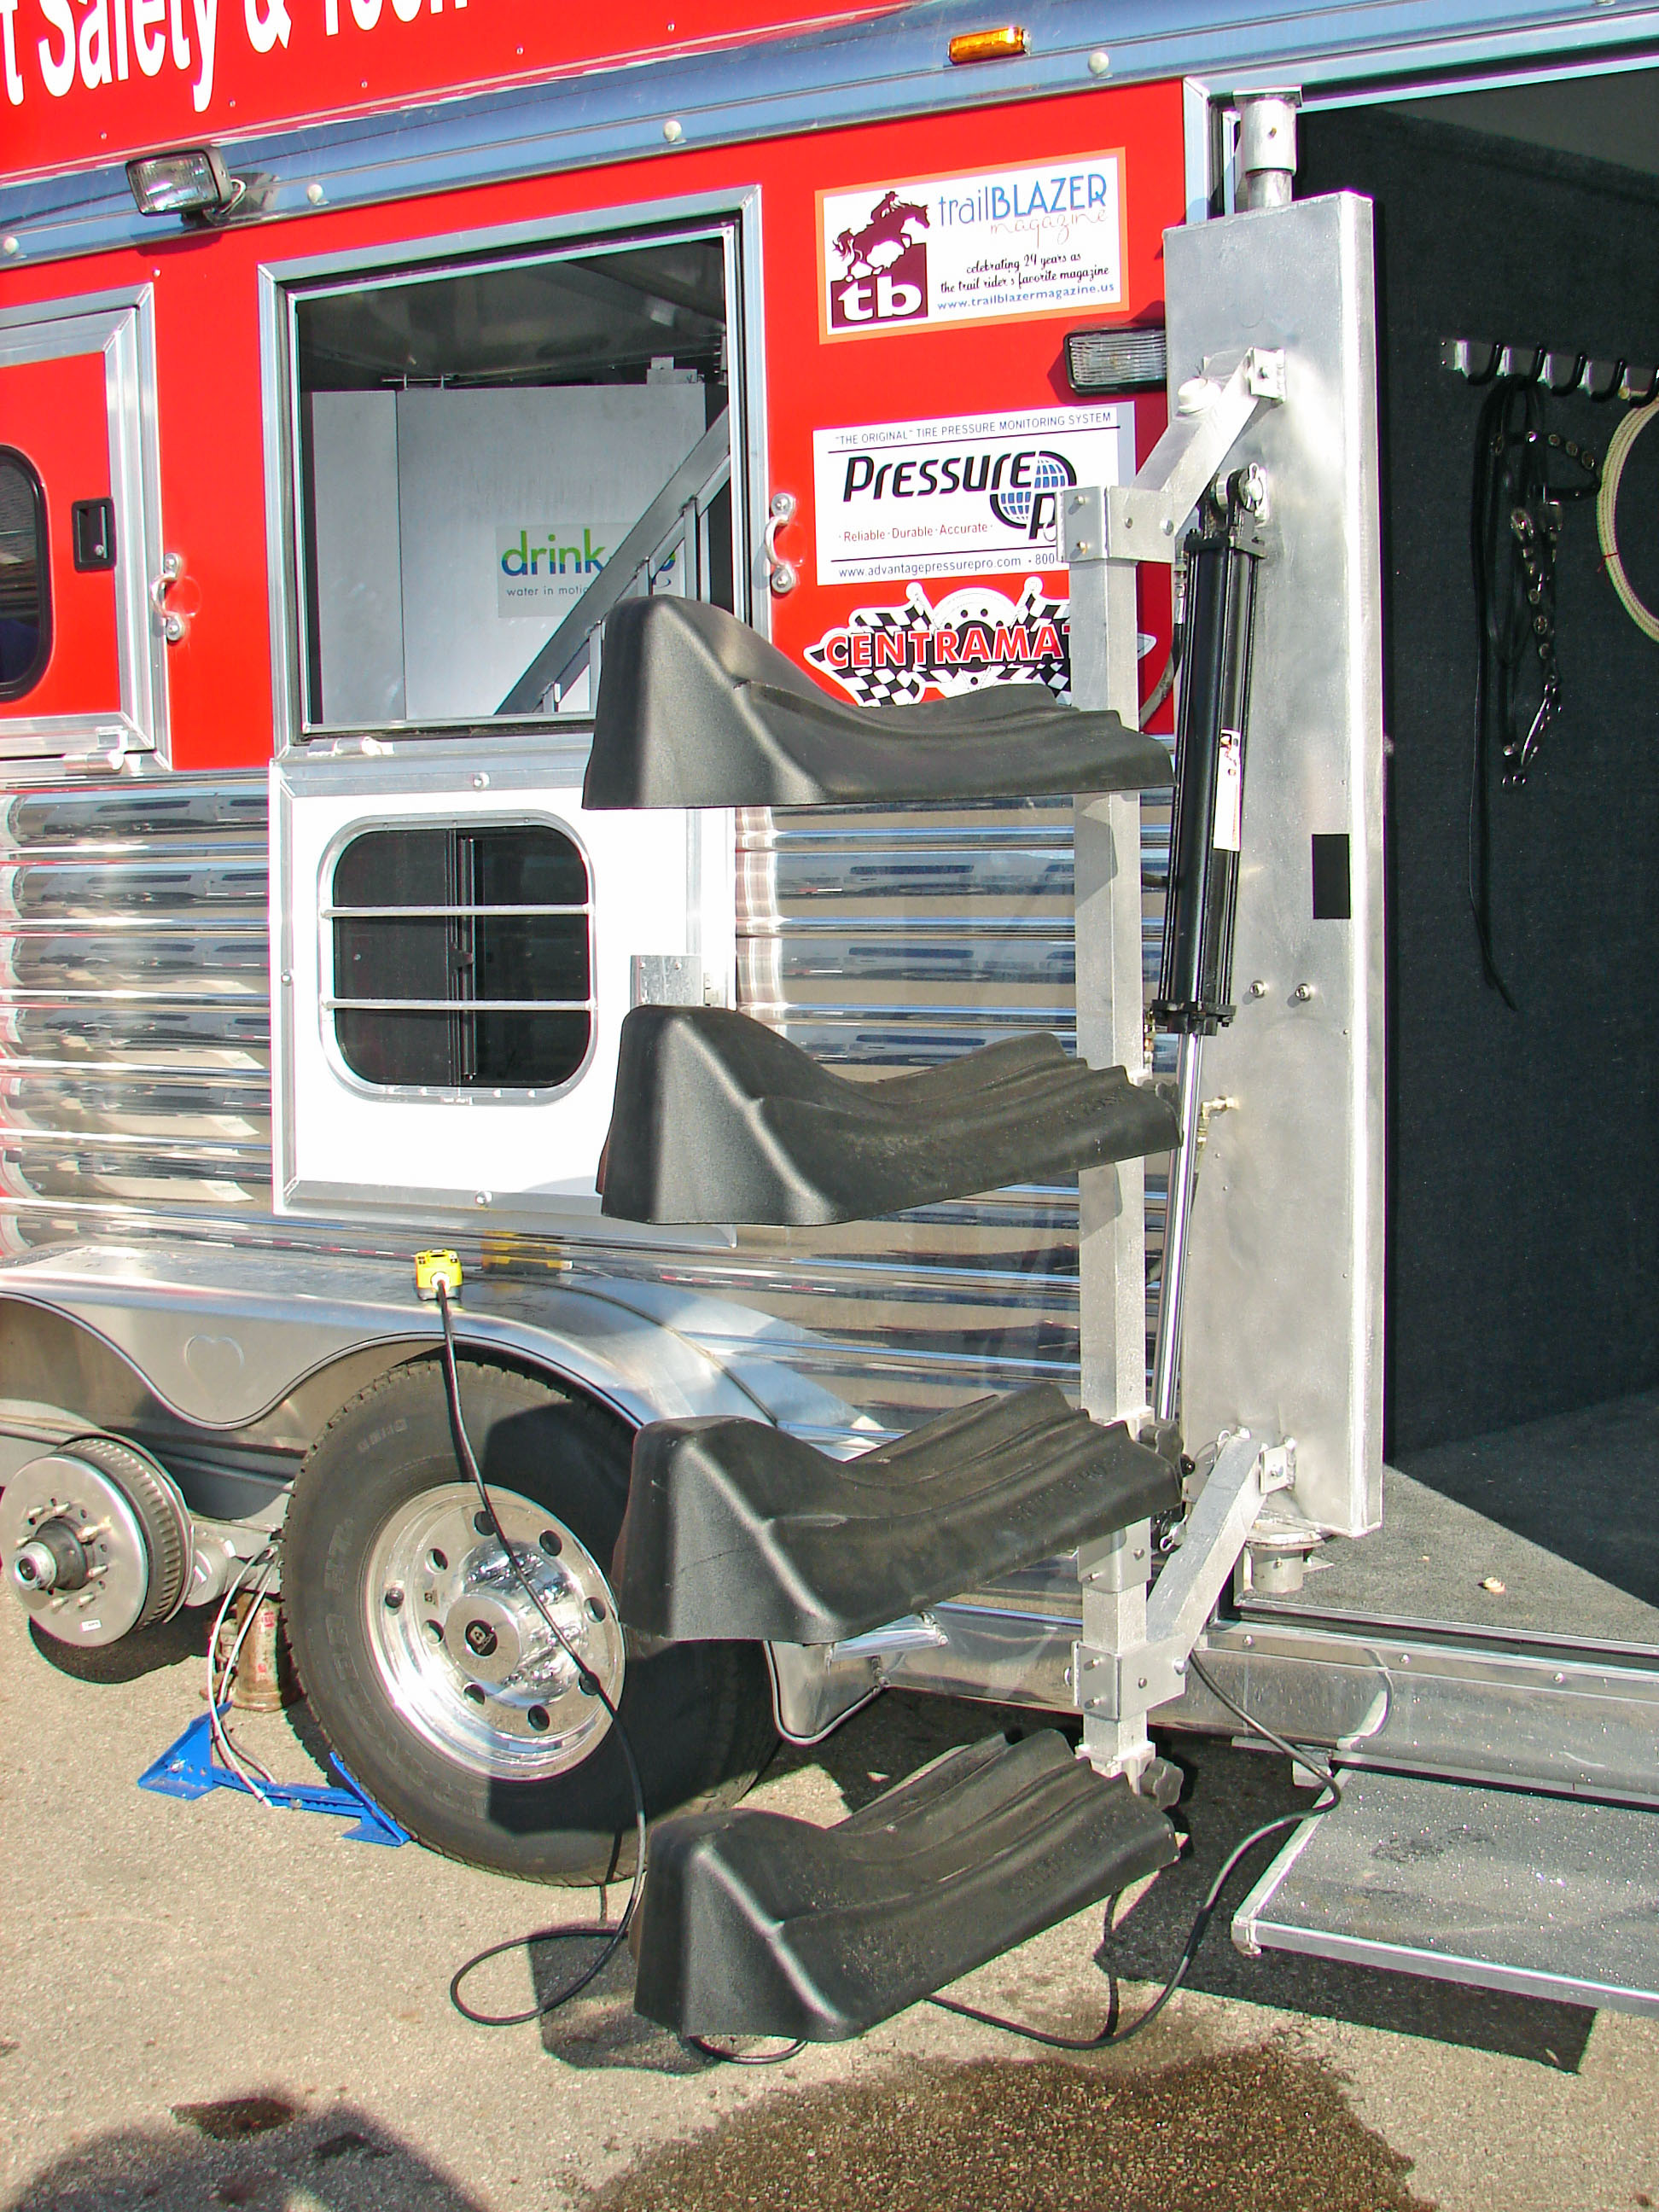 Saddlematic Trailer Power Saddle Rack Hydraulic Tongue Jack Moreover 4 Flat Wiring Push The Button Load Them Fold Away And Head For Home With Swing Out Model It Swings Outside Of Tack Door Easy Access Locks Into